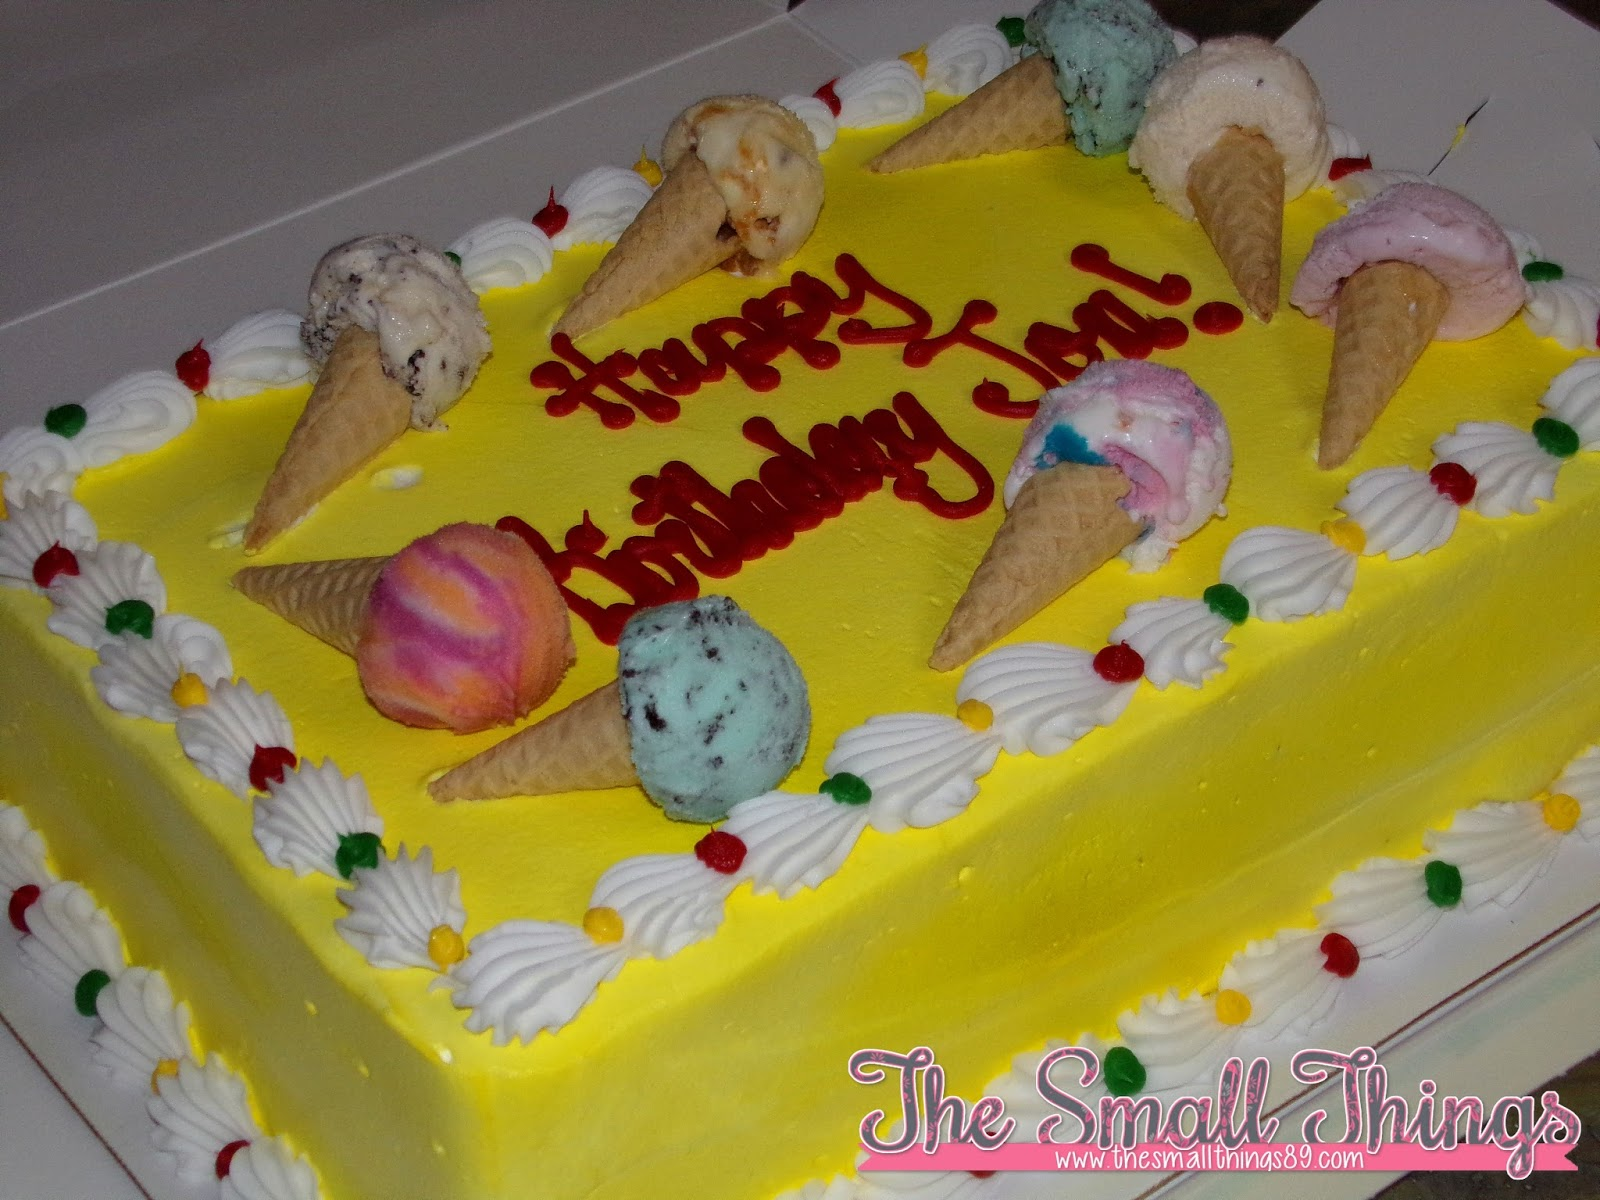 BaskinRobbins Ice Cream Cakes Are Delicious Get One For Your